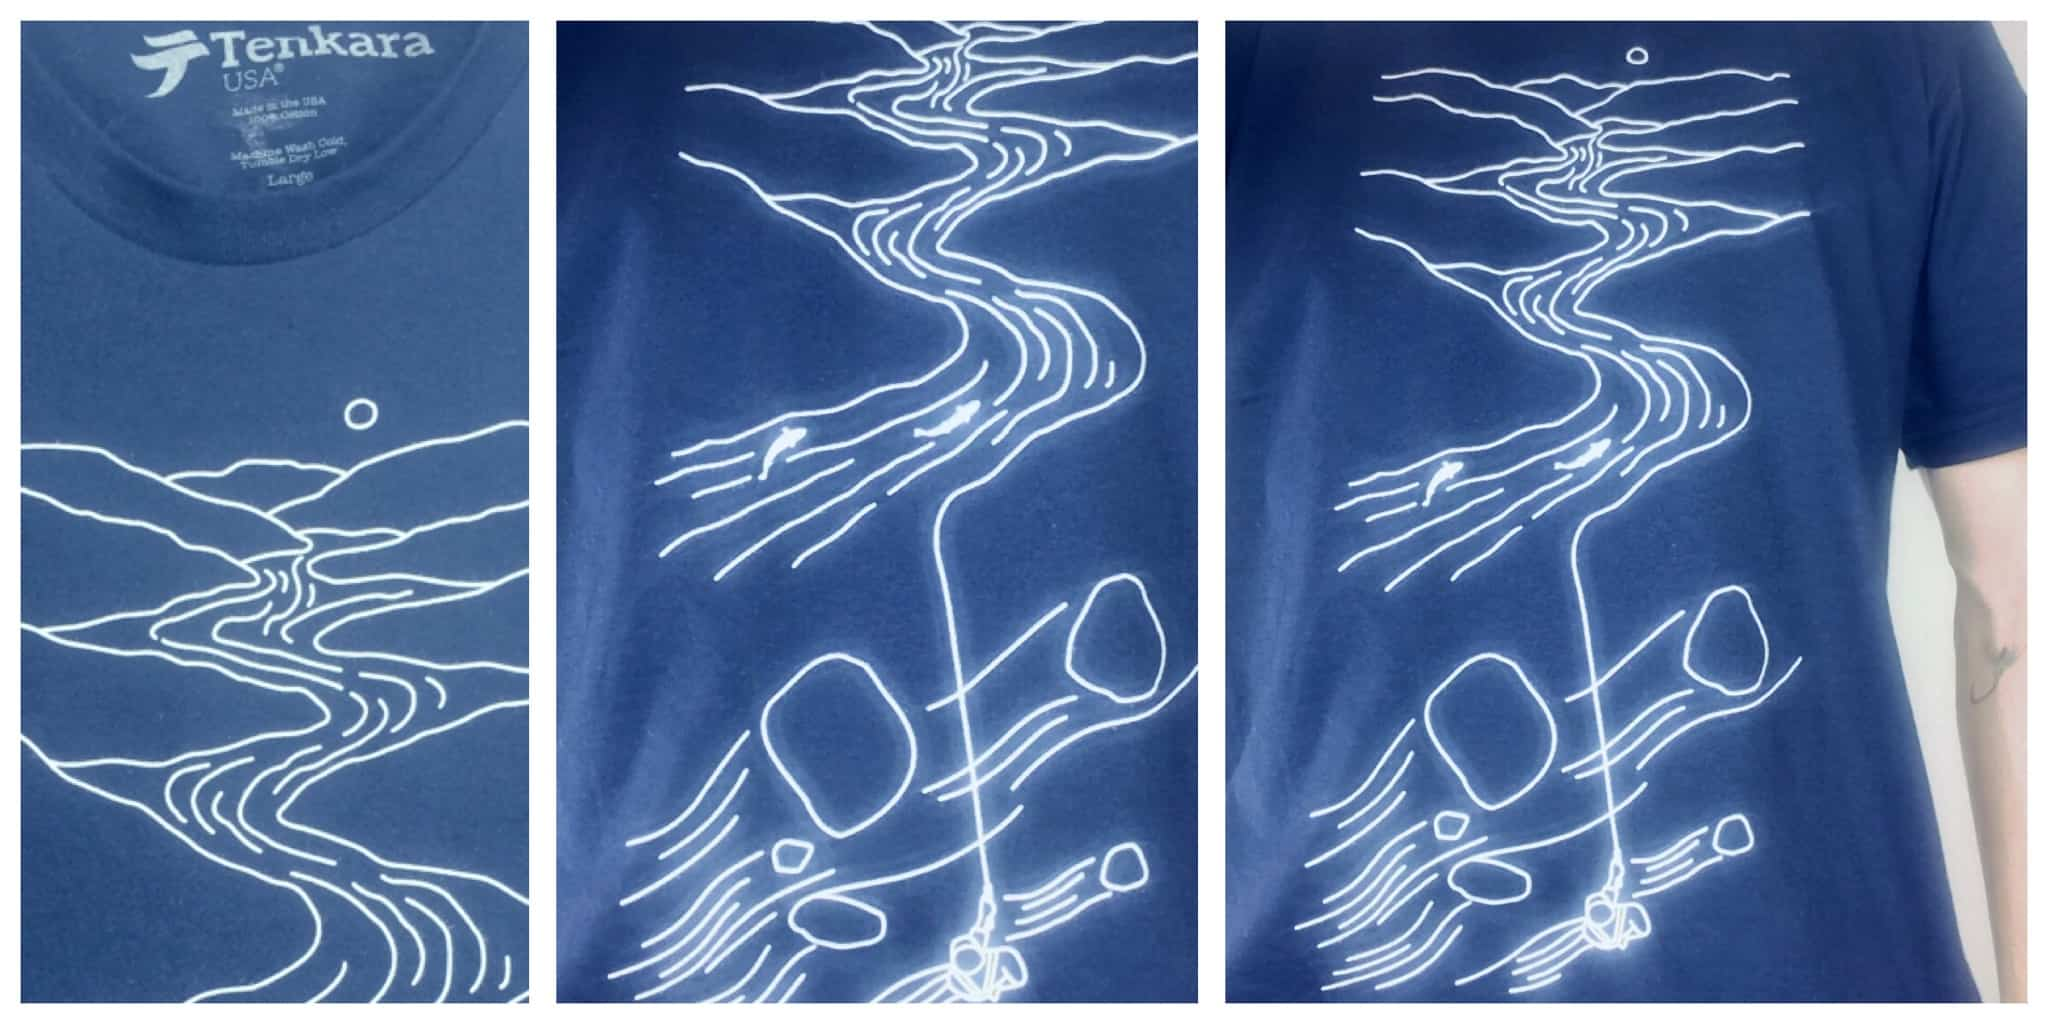 Tenkara line drawing shirt